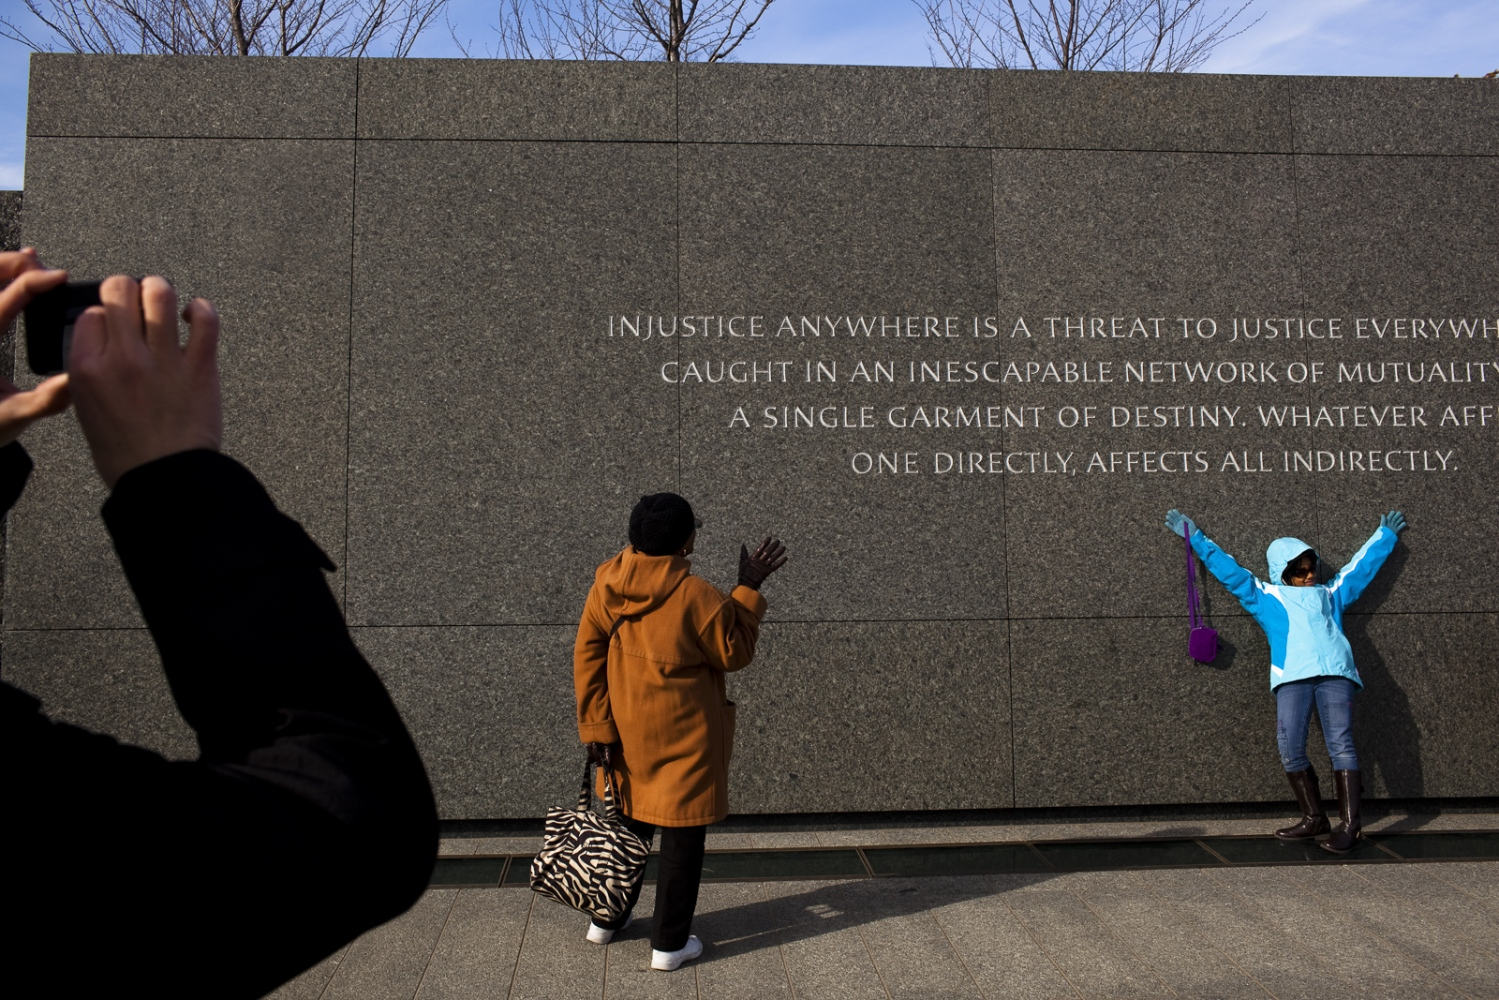 Martin Luther King Jr. Day, Martin Luther King Jr. Memorial